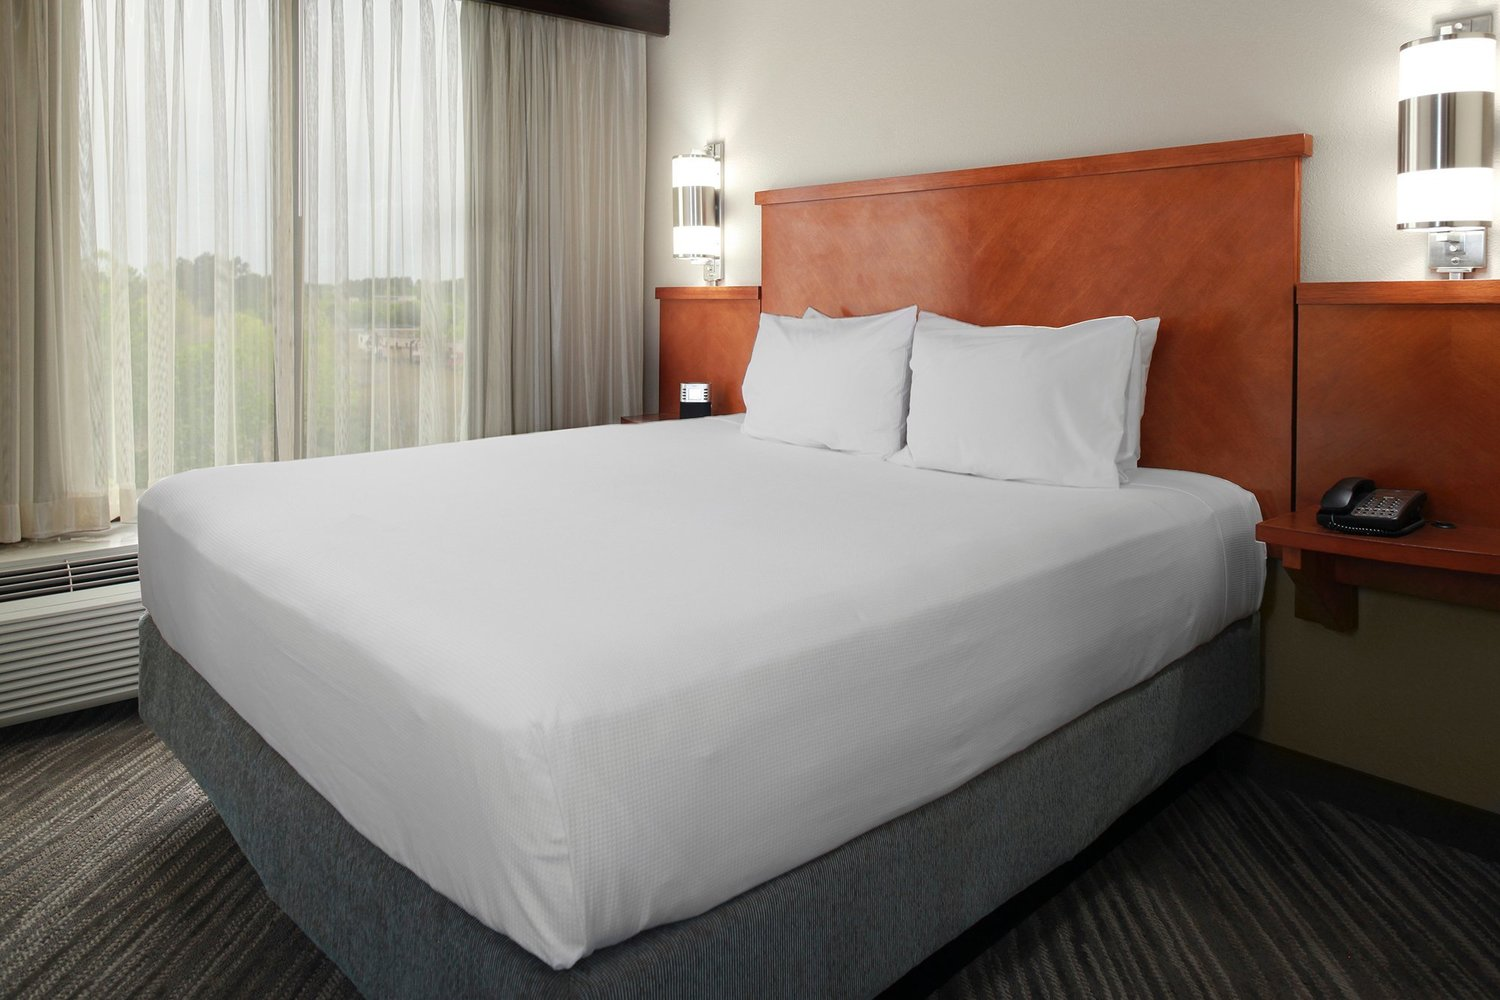 gallery host at hyatt place charlotte airport tyvola road